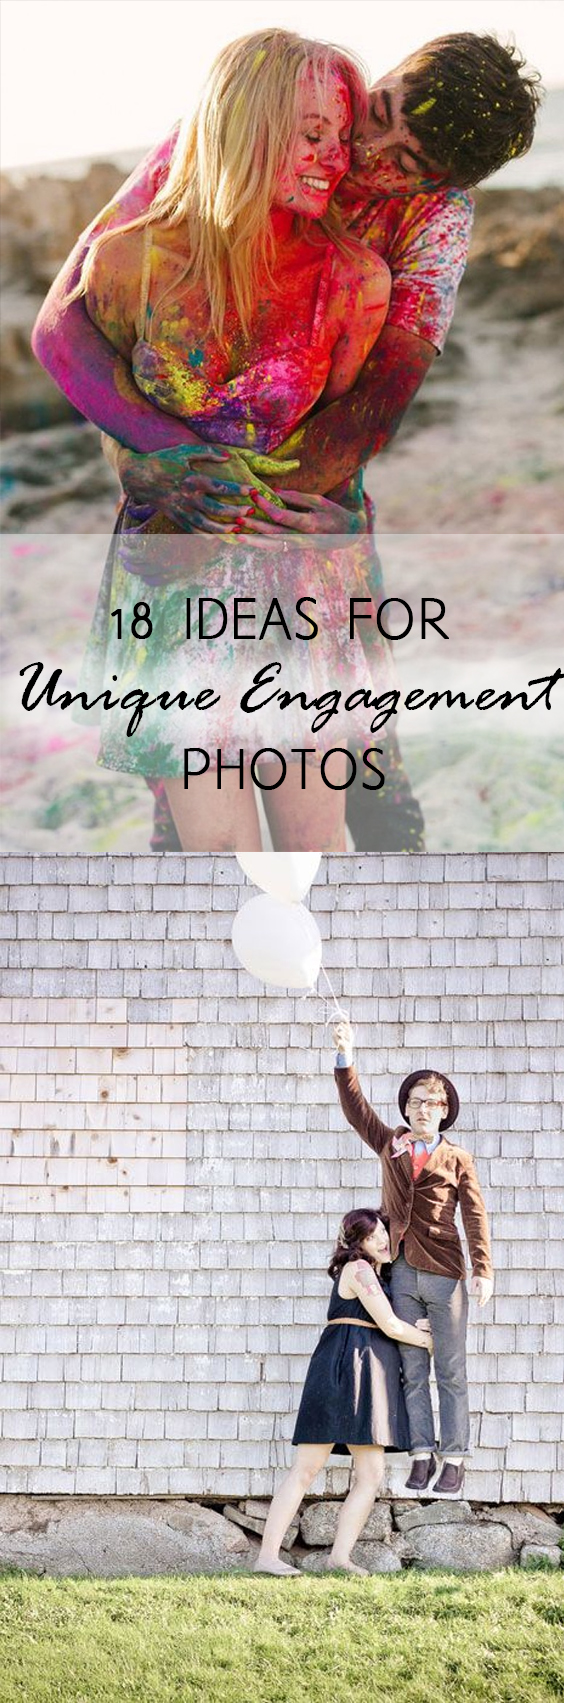 Engagement Photos, Engagement Pictures, Wedding Photography, Photography Tips, Wedding Photography Hacks, Popular Pin, Weddings, Wedding Planning